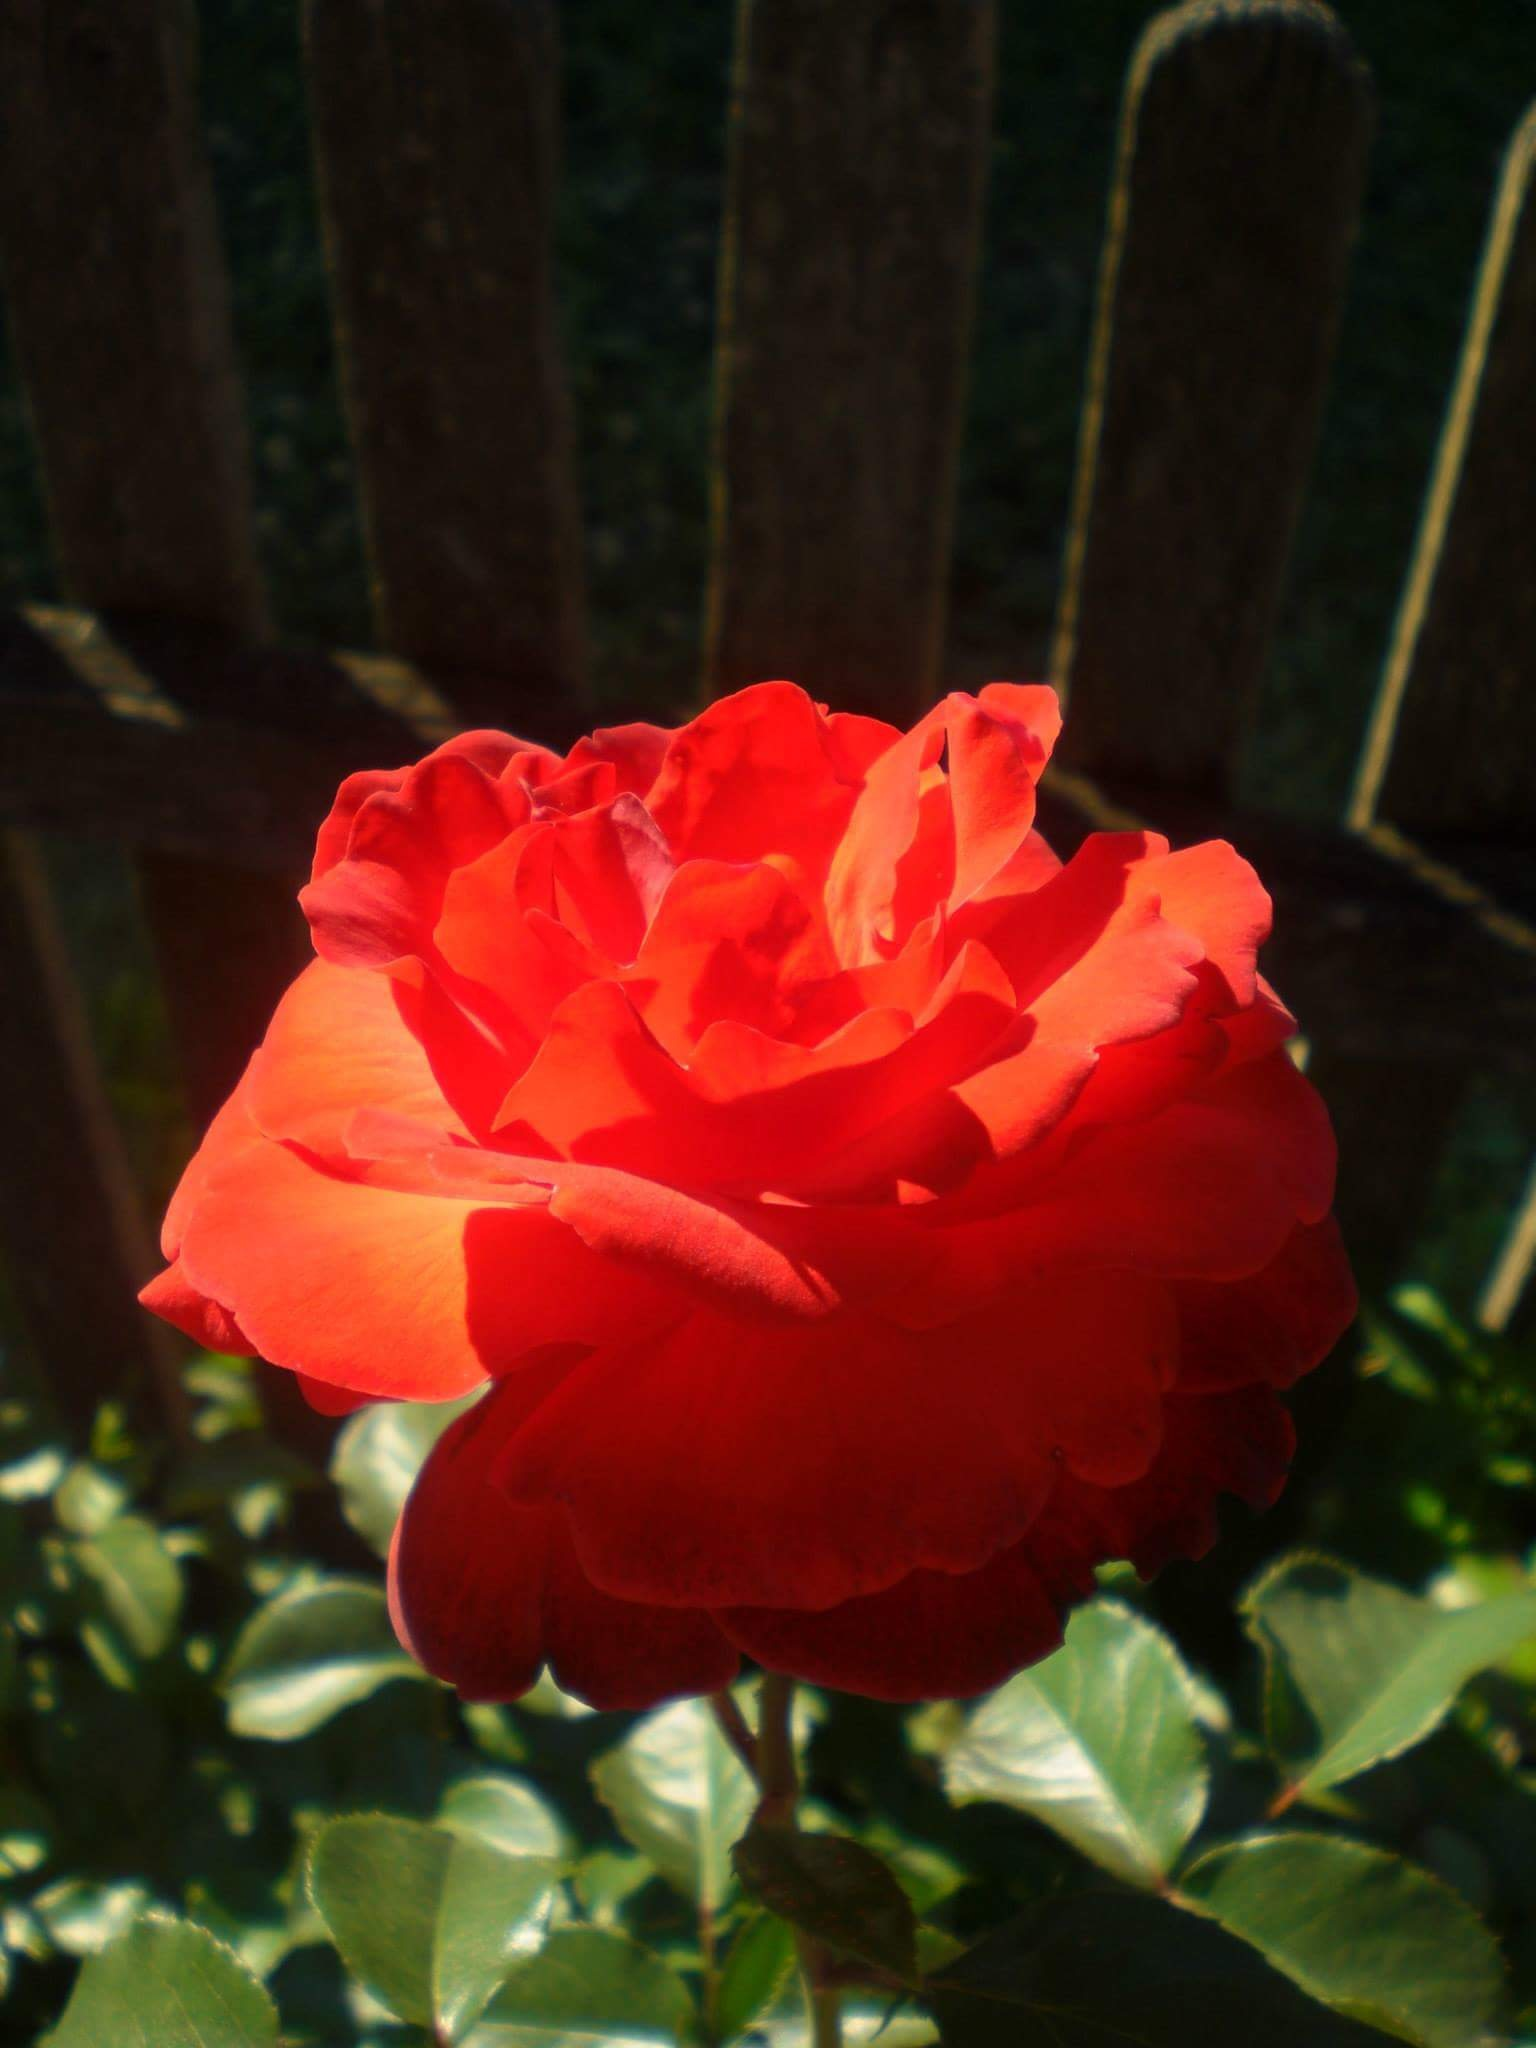 the special red rose from grandma's garden by Iri Rusu